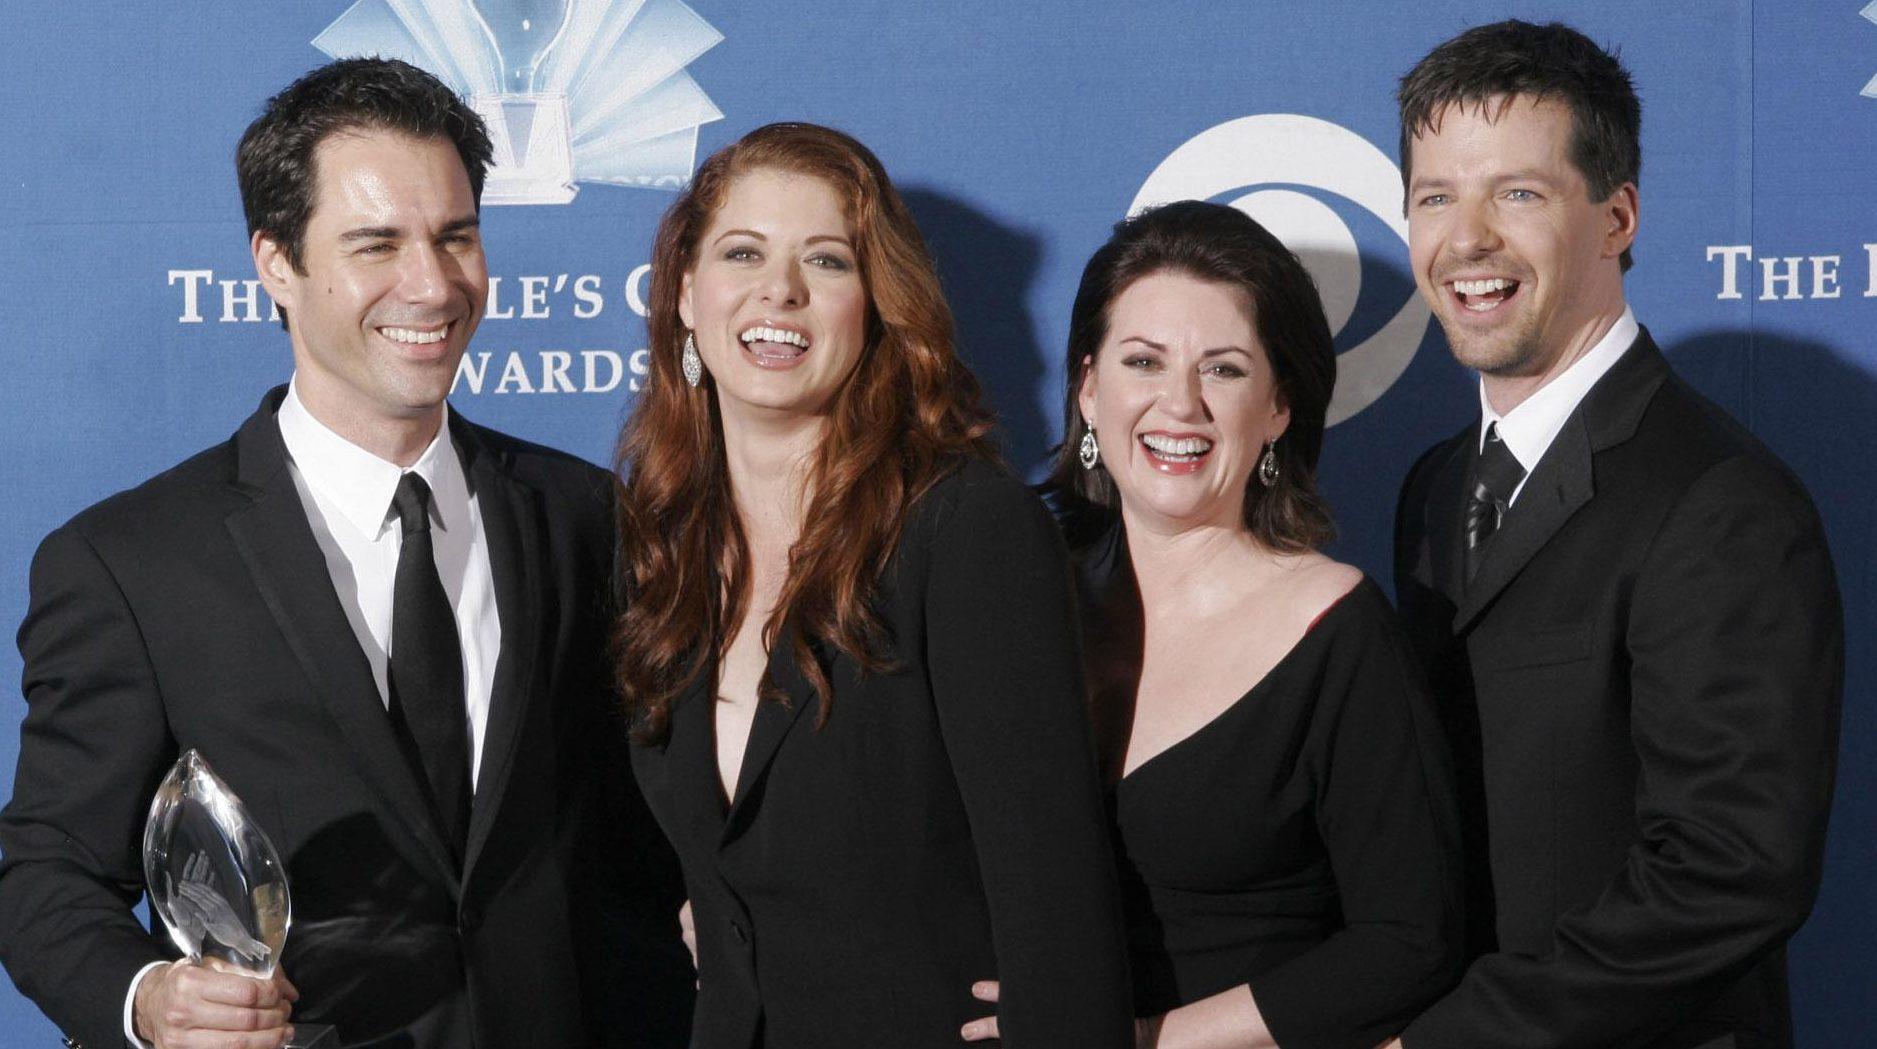 The cast of 'Will and Grace' (left to right) Eric McCormack, Debra Messing, Megan Mullally and Sean Hayes, as the return of Will & Grace saw Channel 5 more than double its audience numbers for its slot when the hit US sitcom resumed after an 11-year break. (Francis Specker/PA Wire)